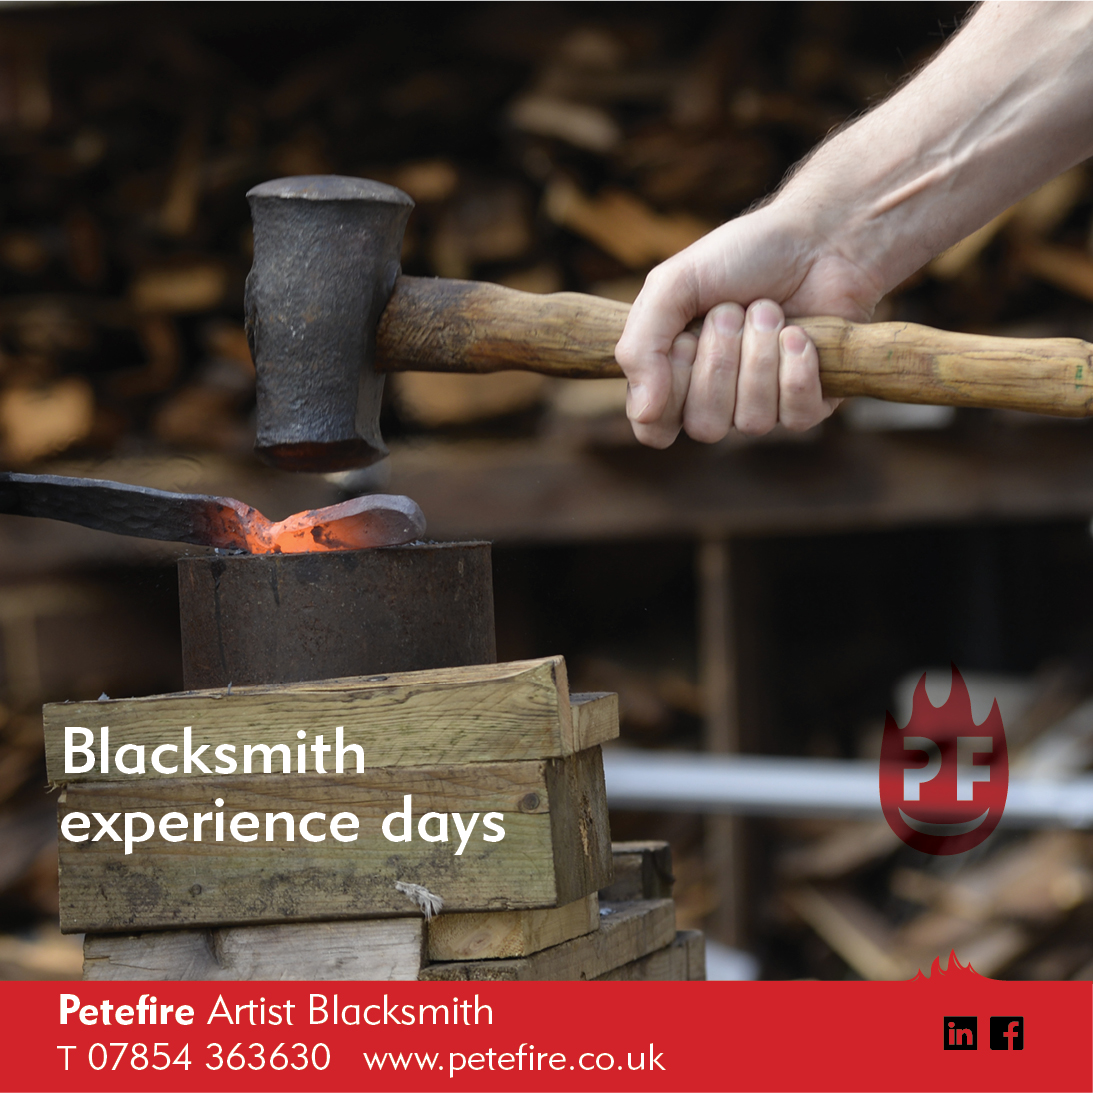 Petefire Artist Blacksmith, forging experience days in Chiswell Green, St Albans, Herts